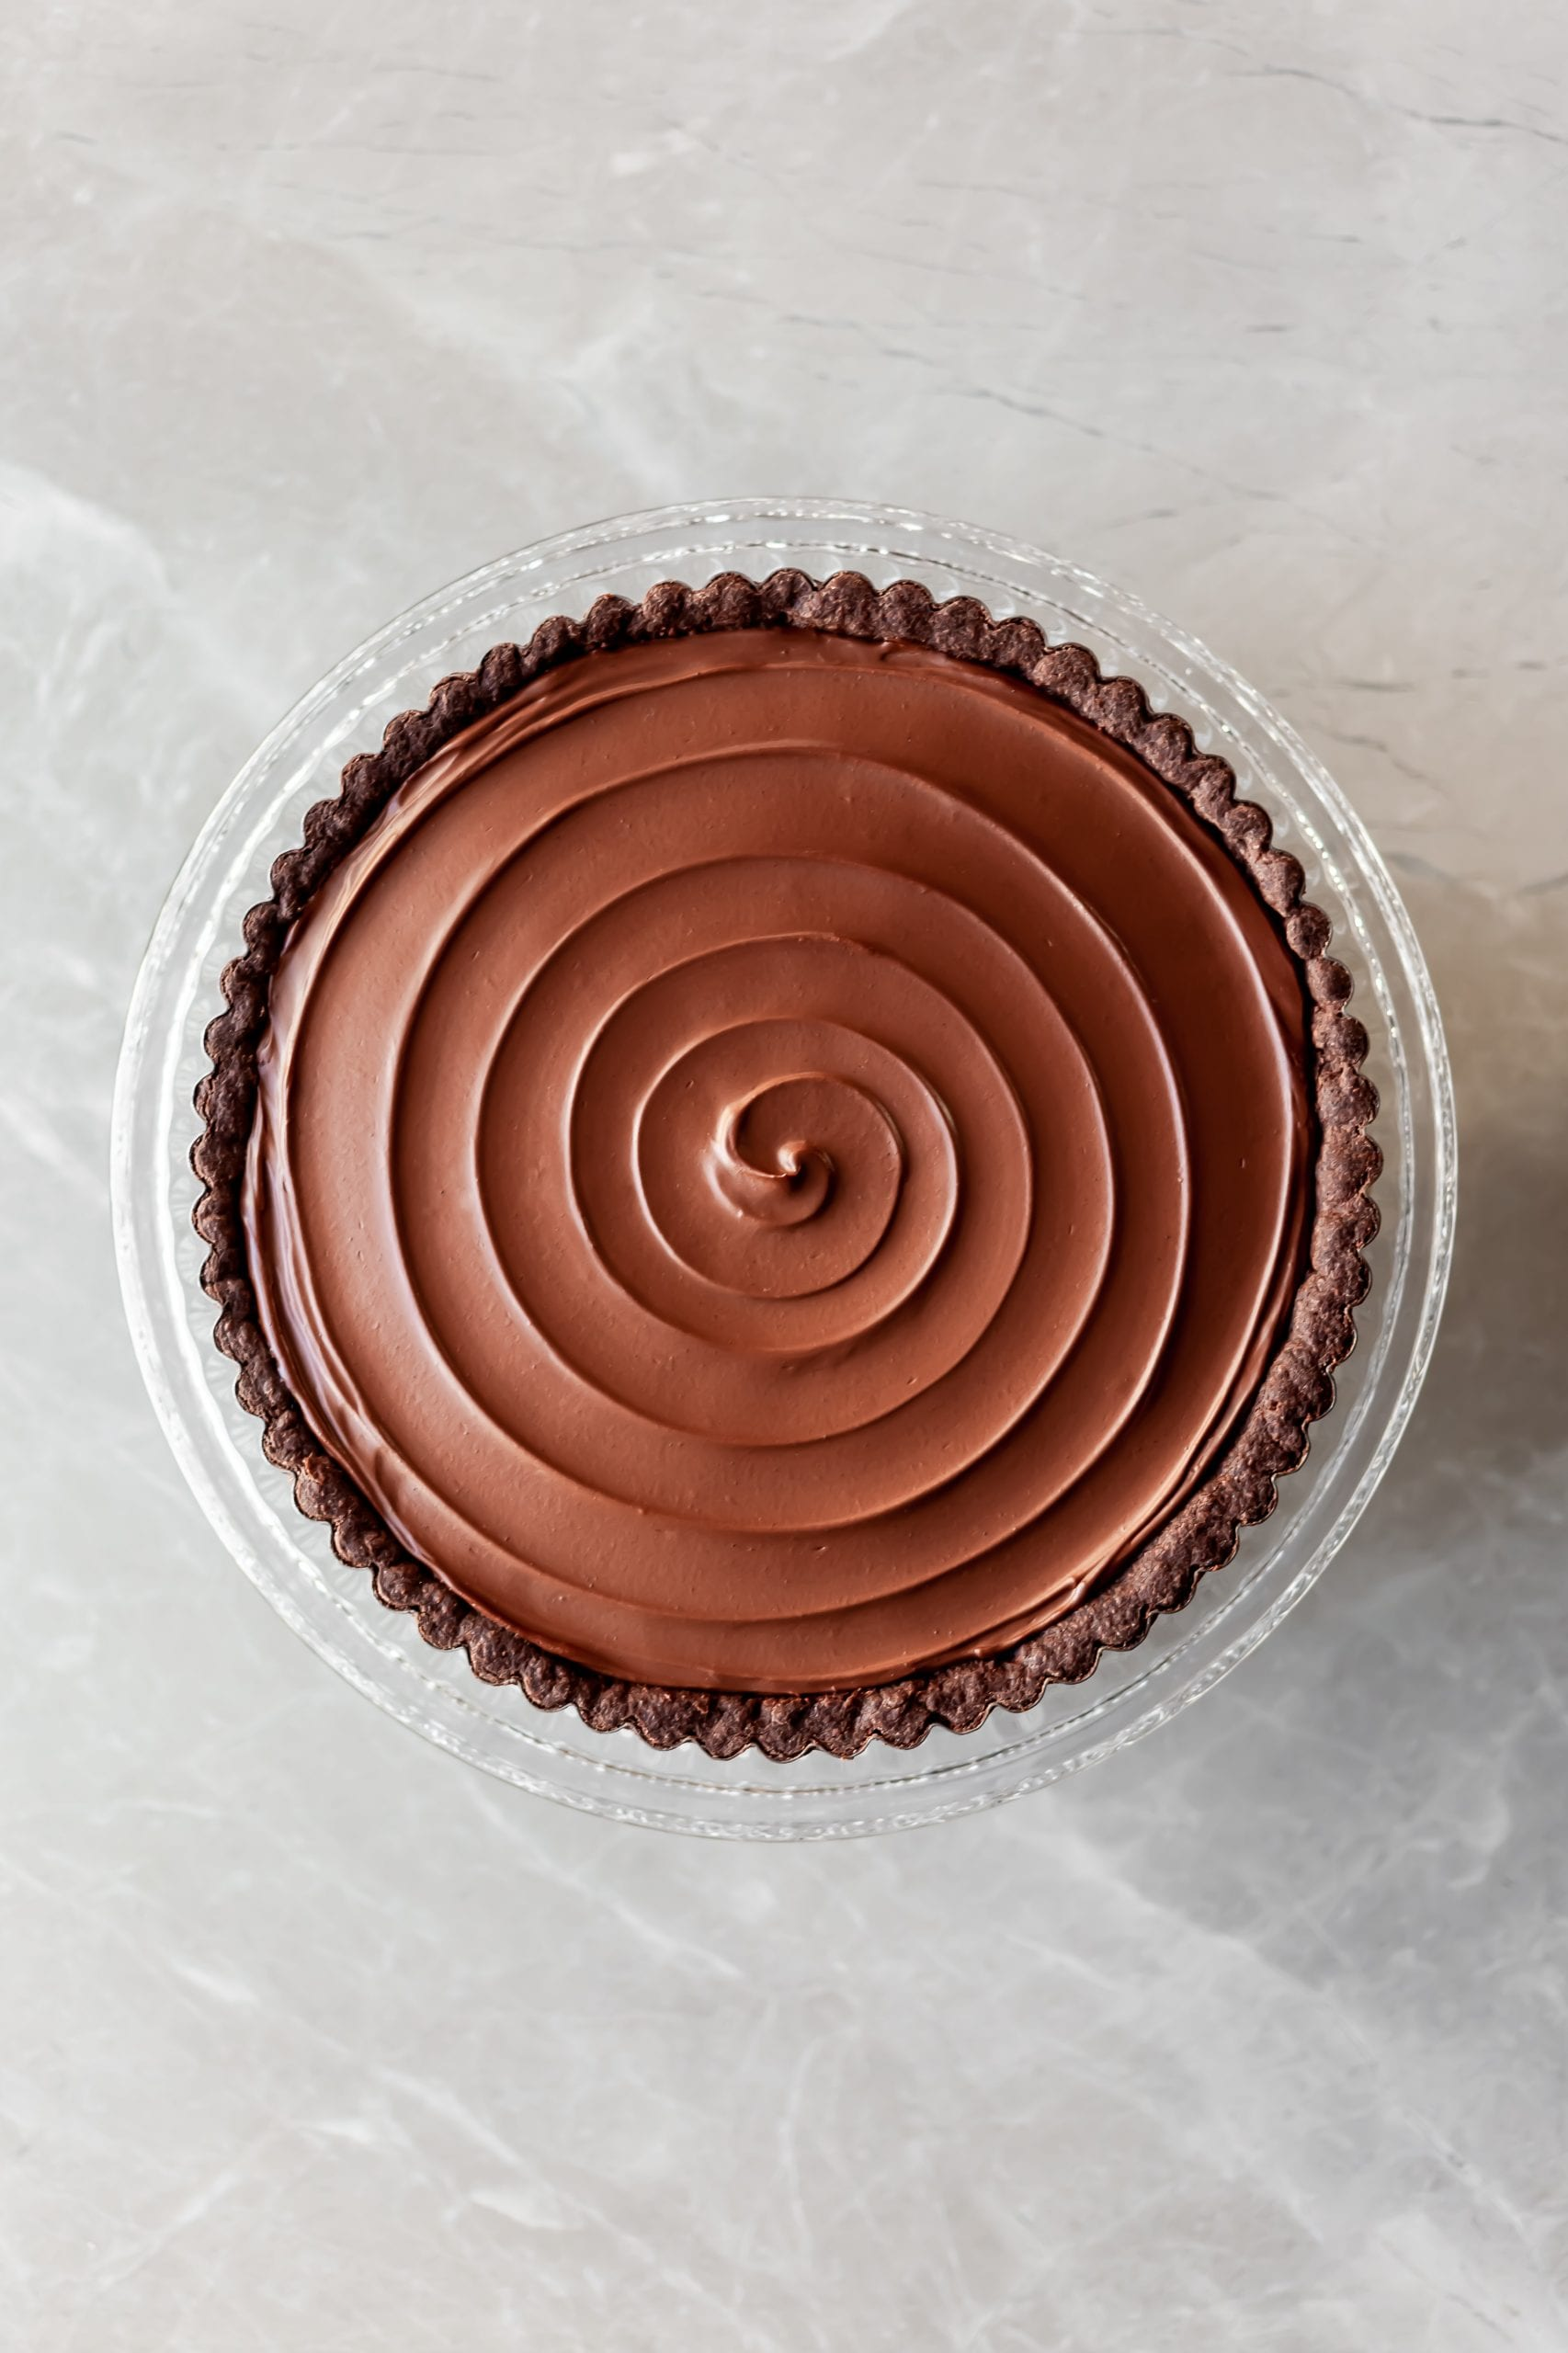 Vegan Chocolate Orange Tart with a swirl through the ganache on top prior to the candied kumquats being placed